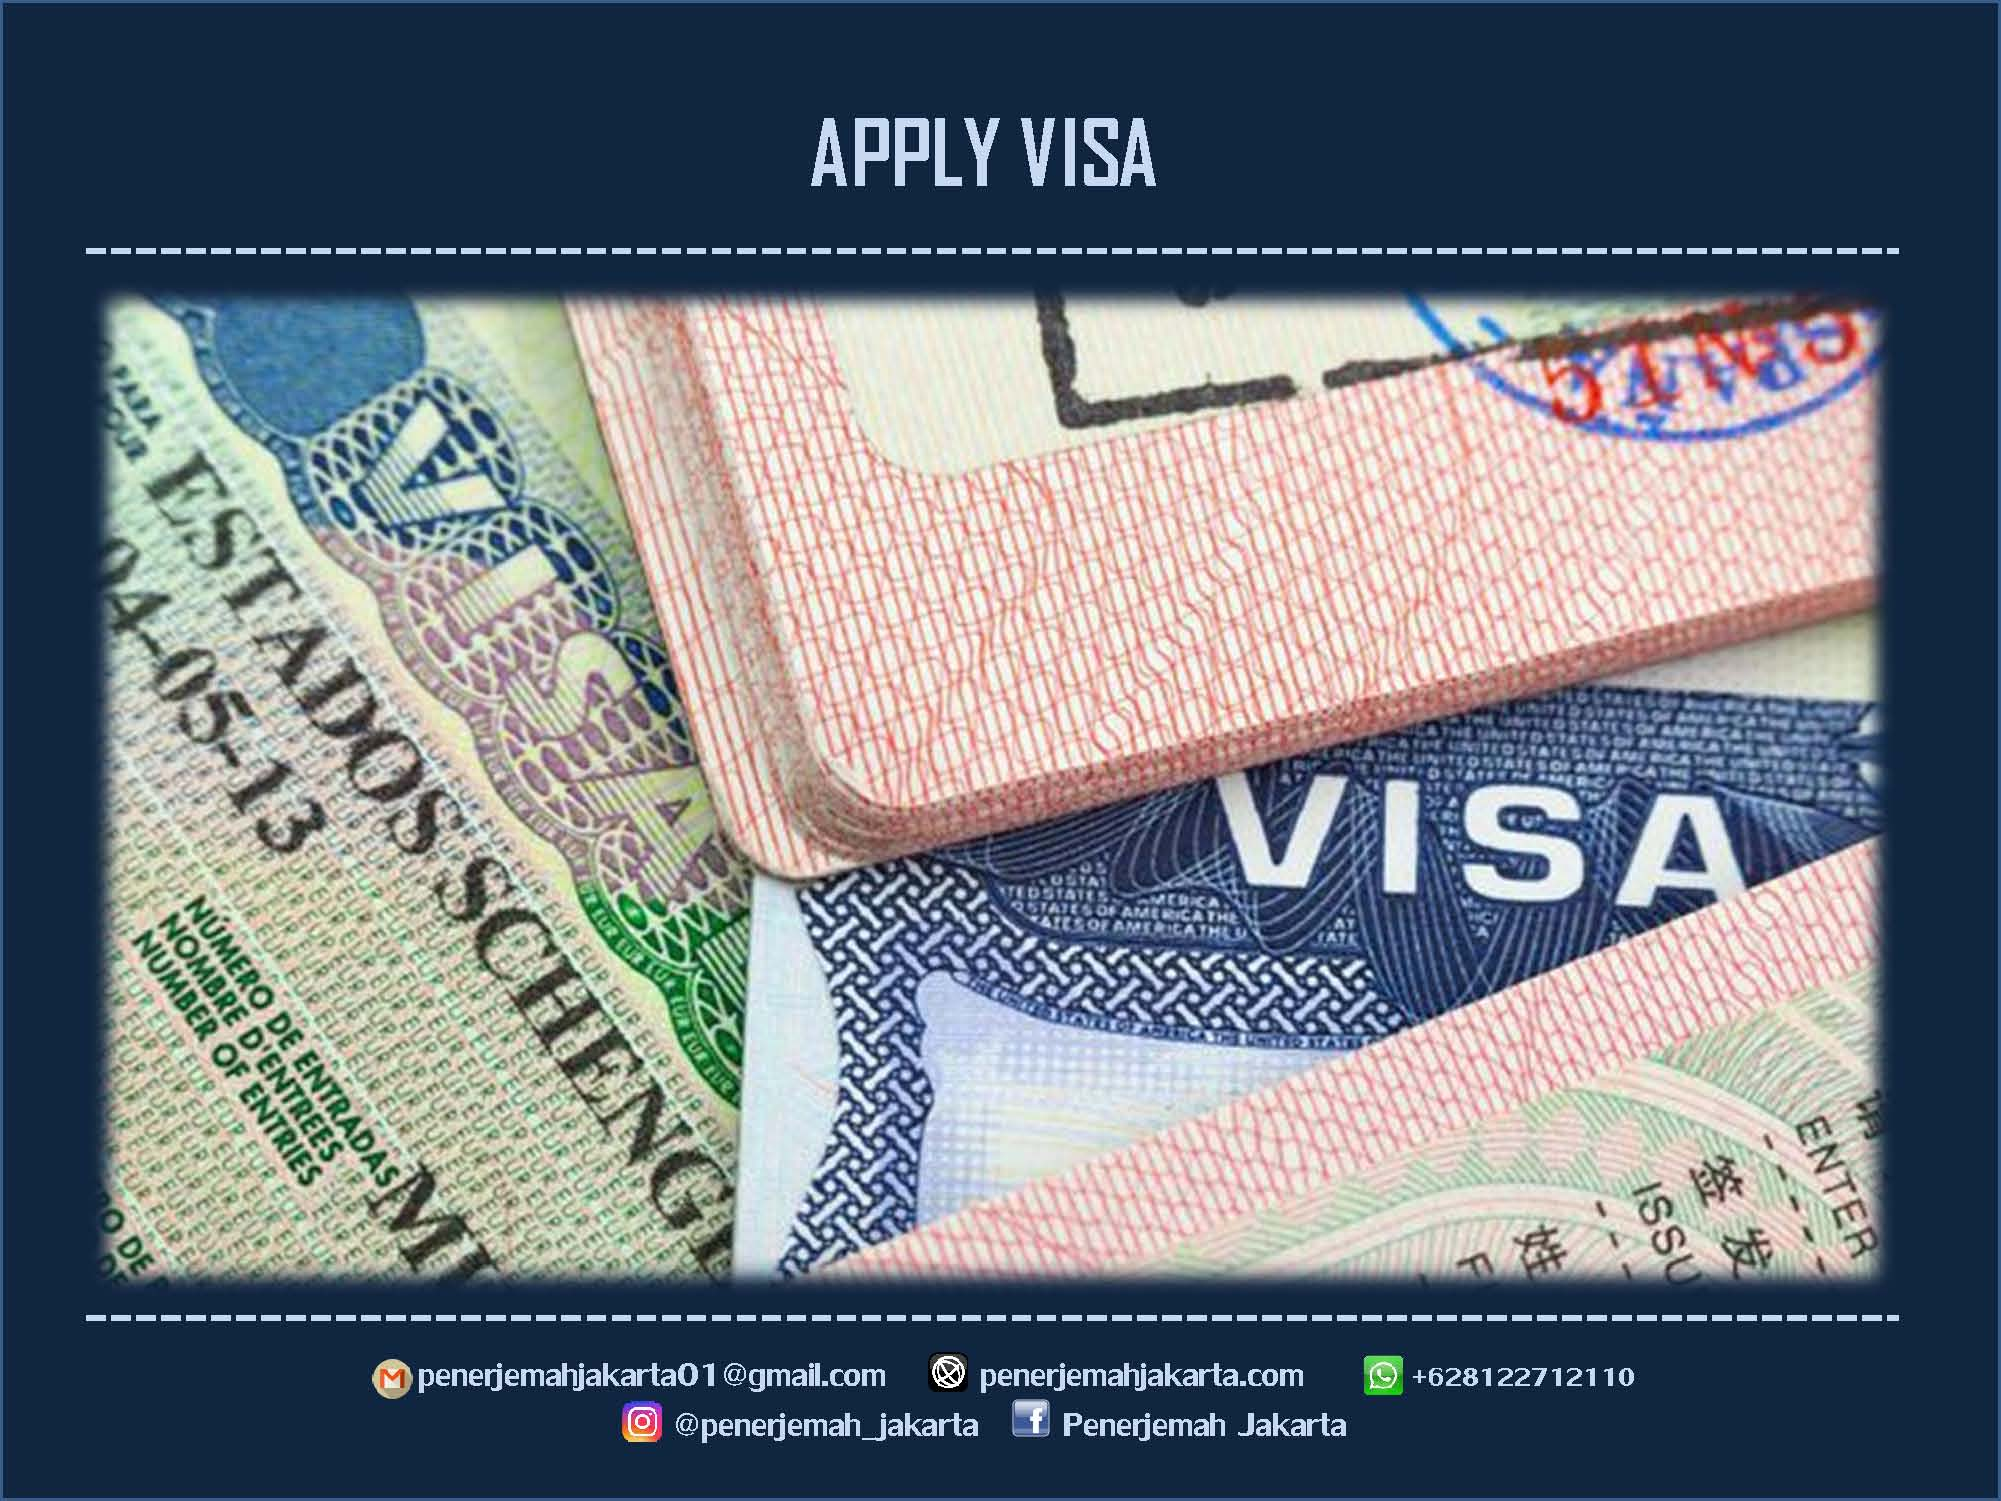 HOW TO APPLY VISA